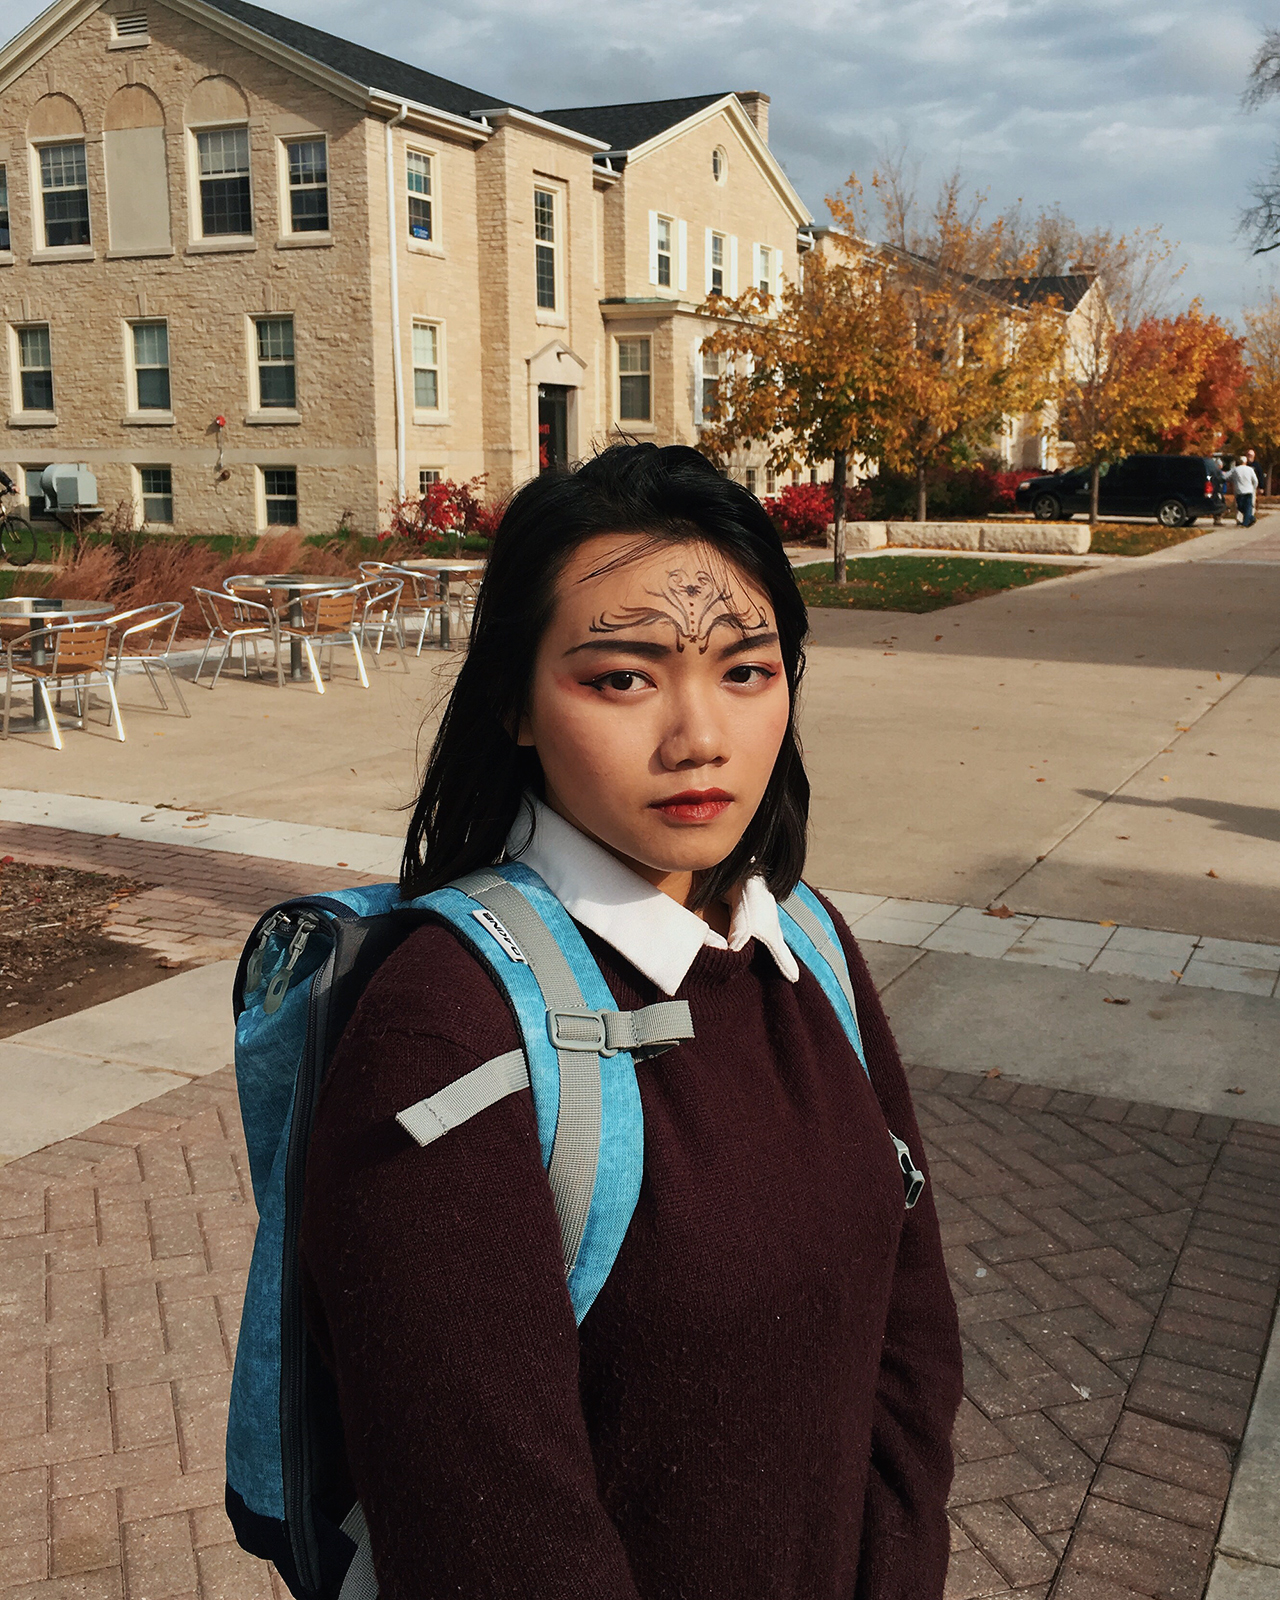 """I like to draw something cool on my face and walk around campus,"" shares sophomore Trang Doan about her makeup. Photo by Ben Tran"